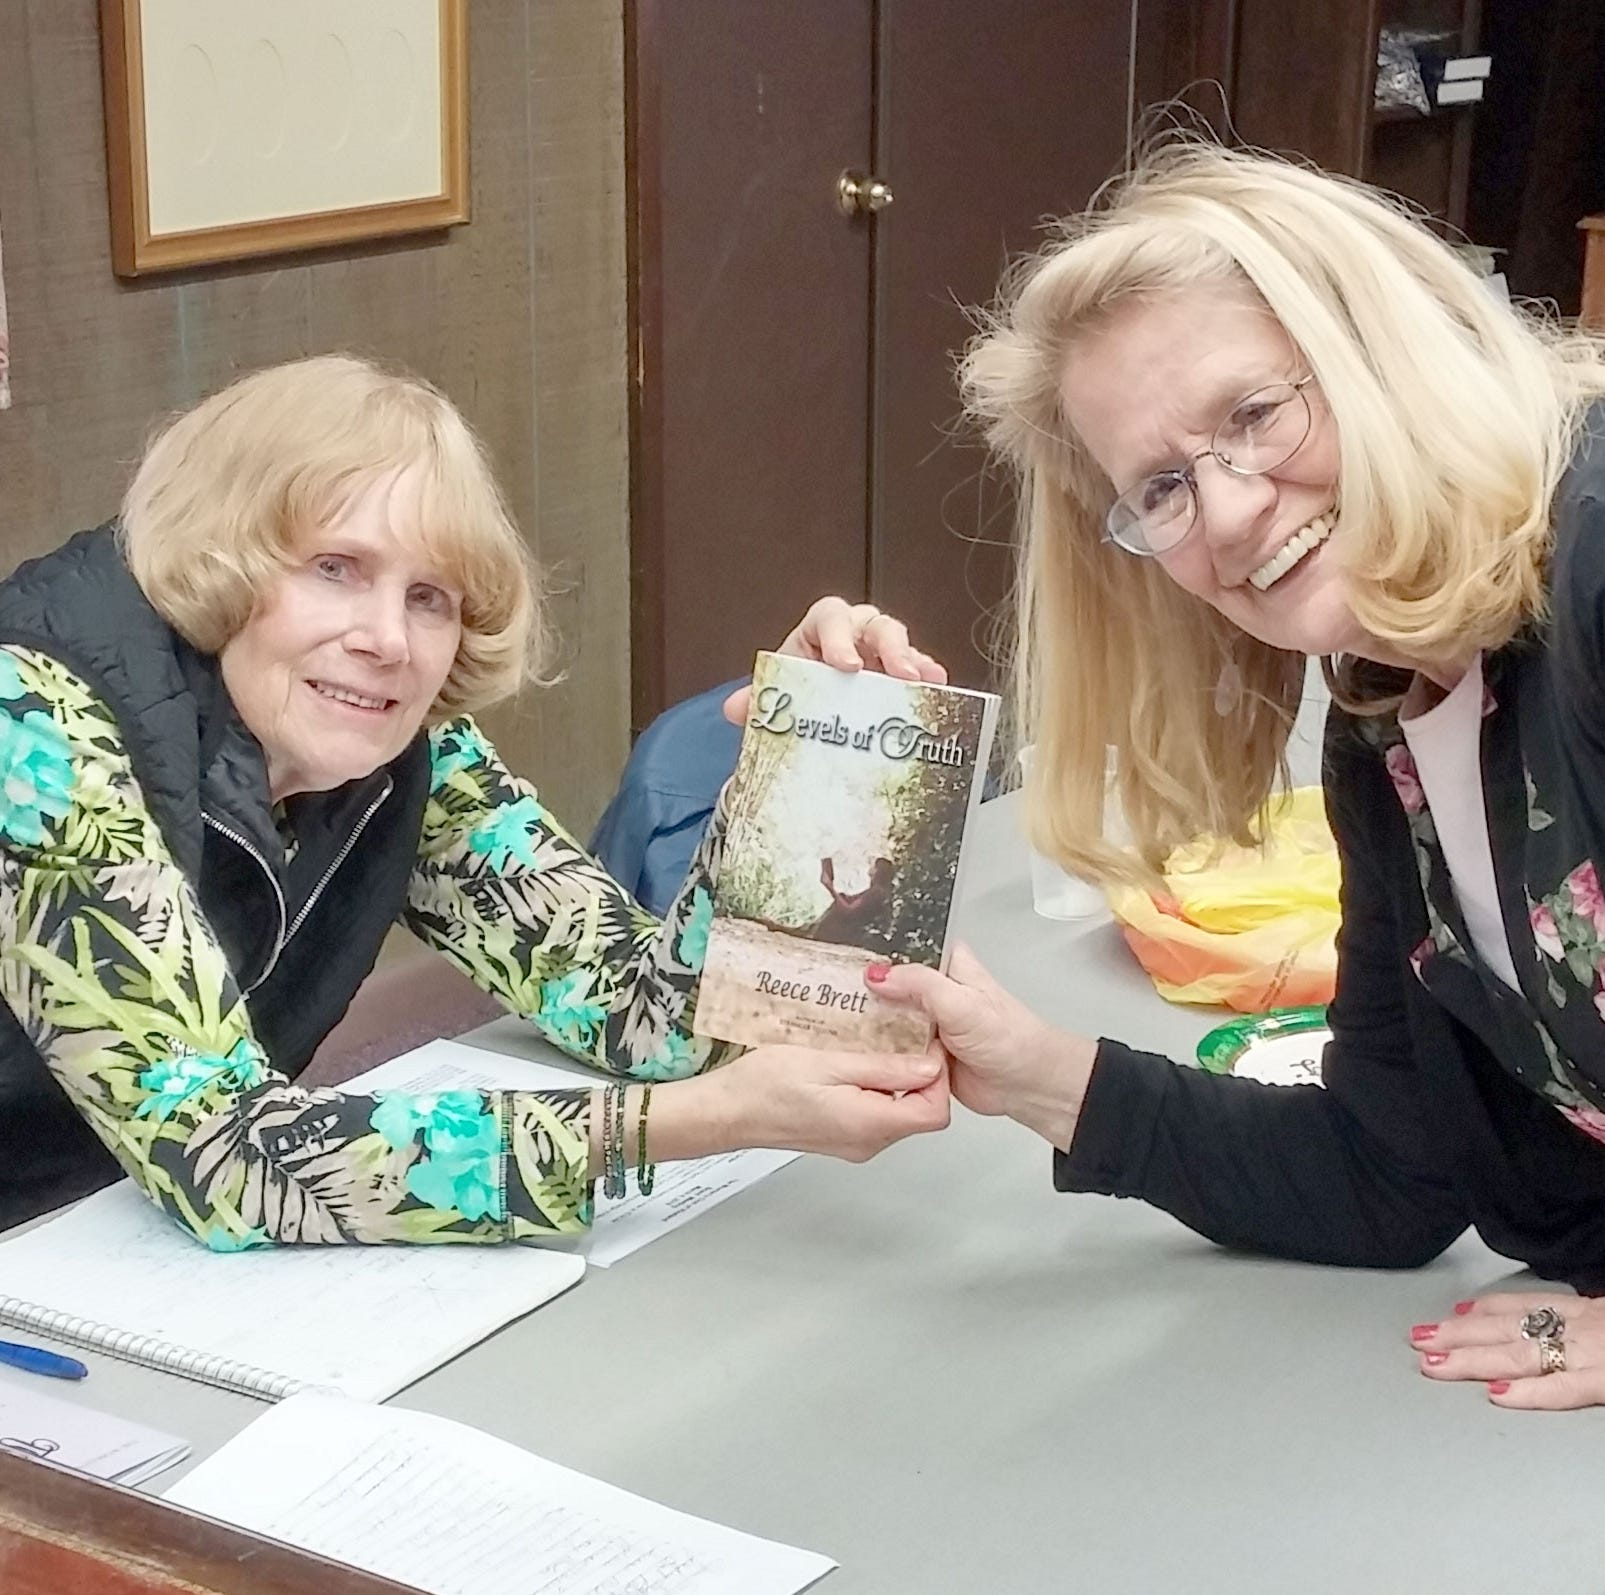 Author speaks at Woman's Club of Vineland meeting